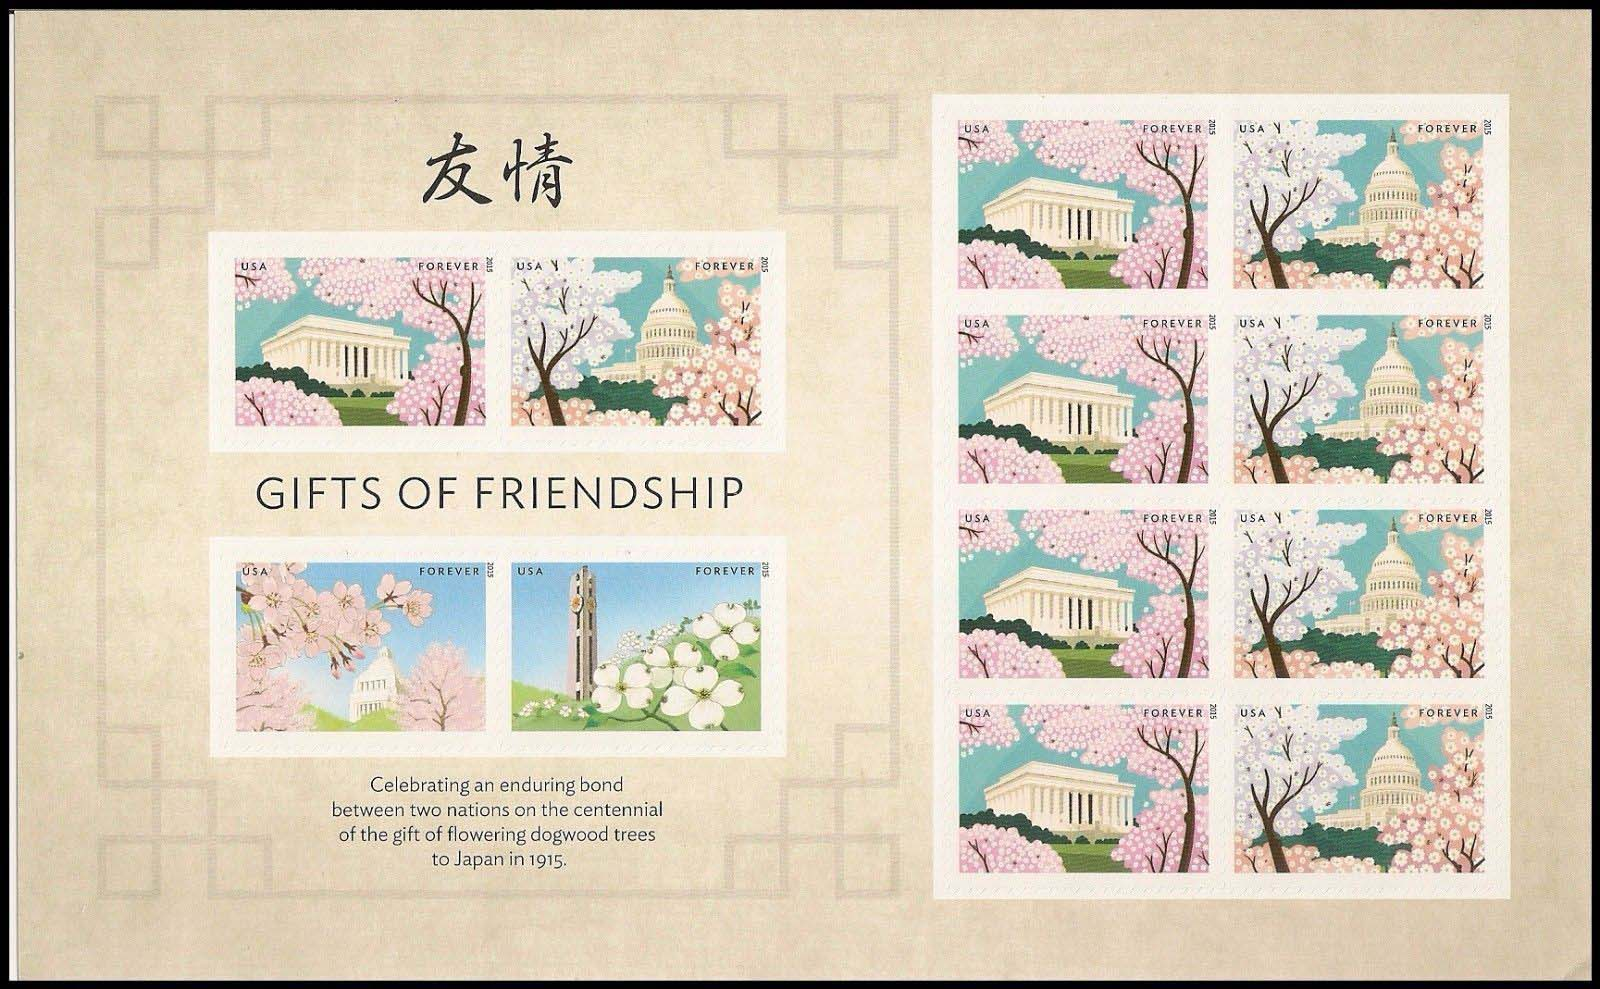 Scott #4982-4985, Forever sheet of 12, Gifts of Friendship